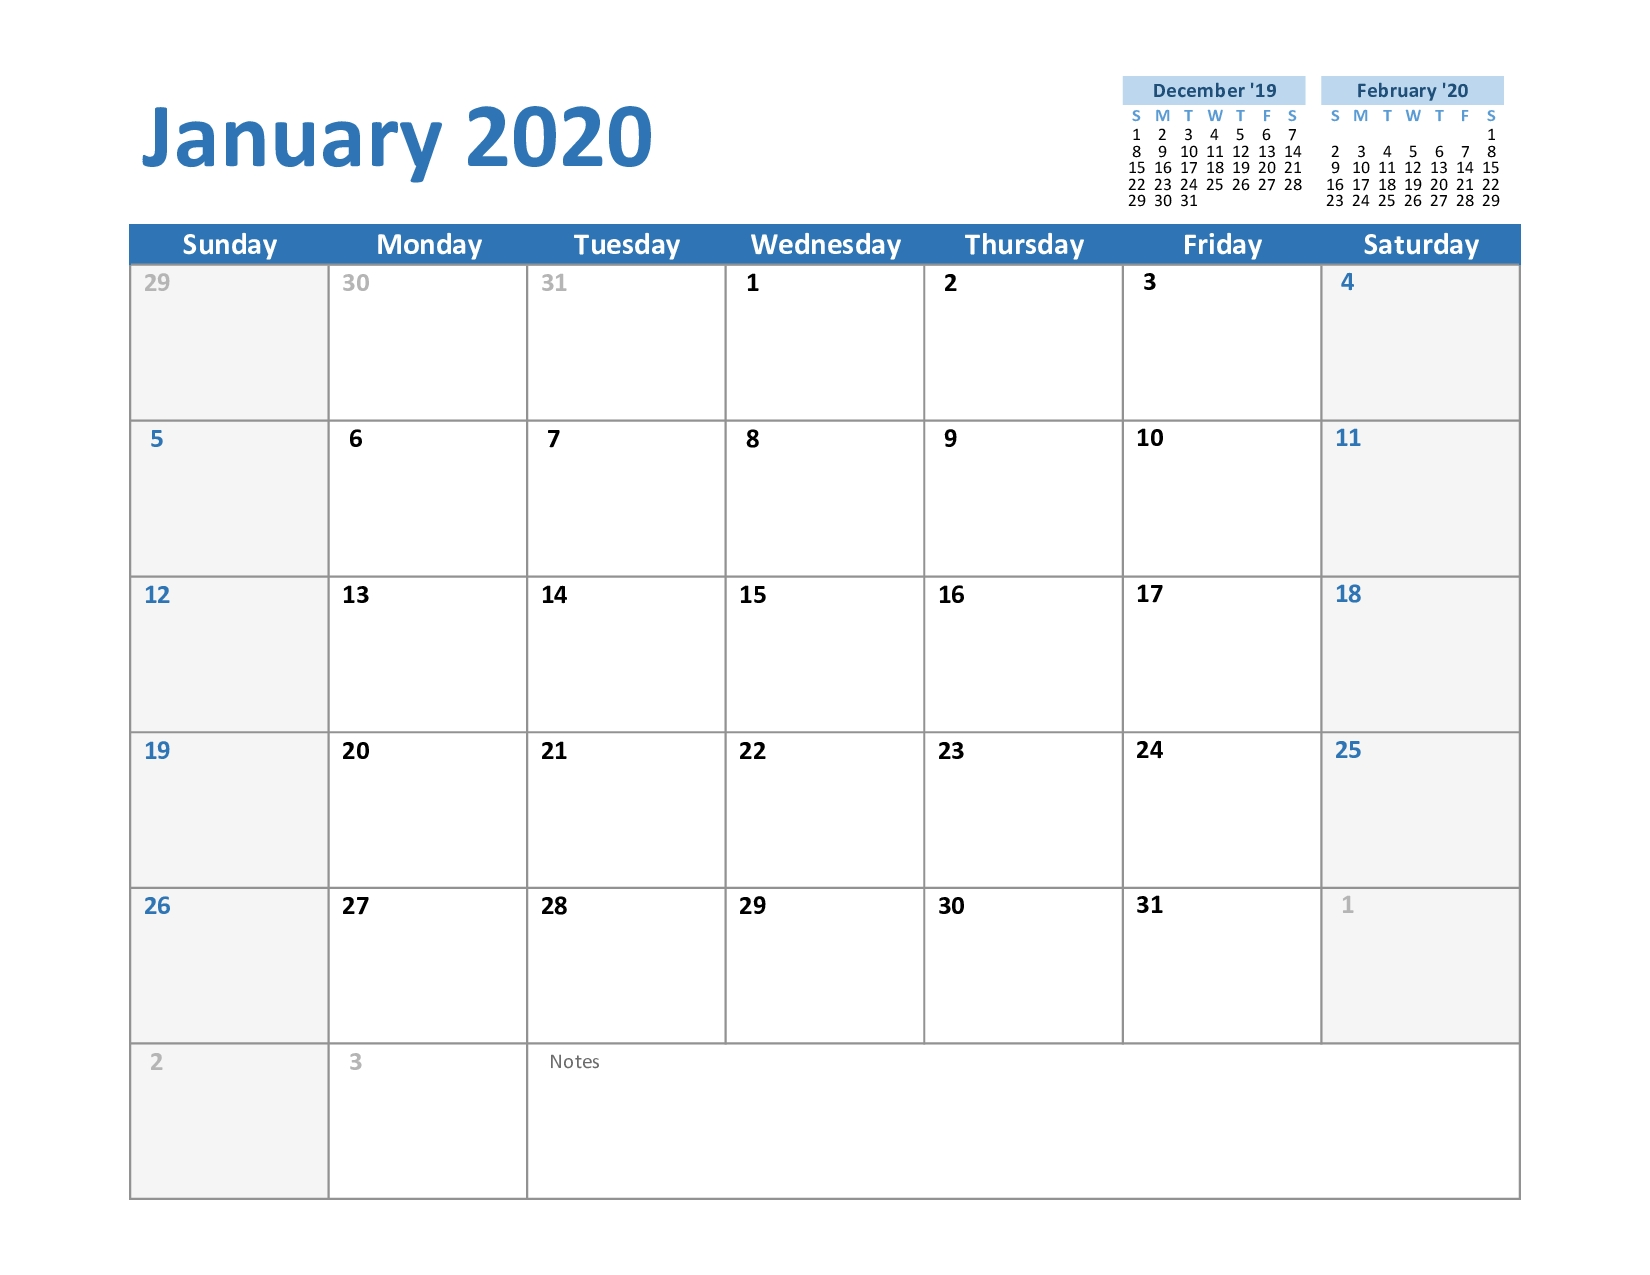 Free 2020 Calendar Template Word - Colona.rsd7 within Microsoft Word Calendar Template 2019-2020